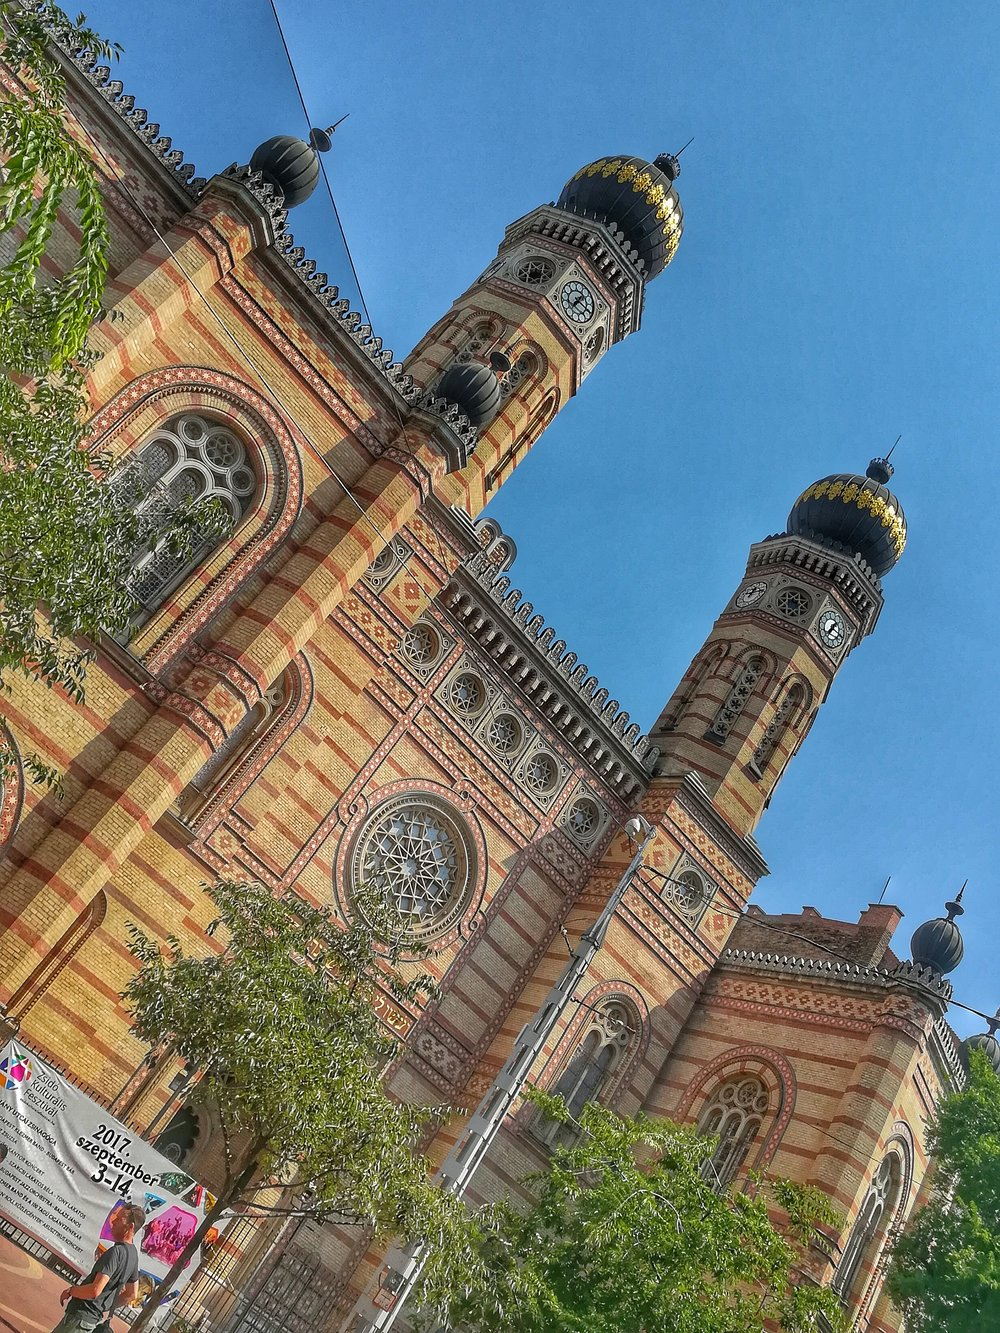 The world's second largest synagogue